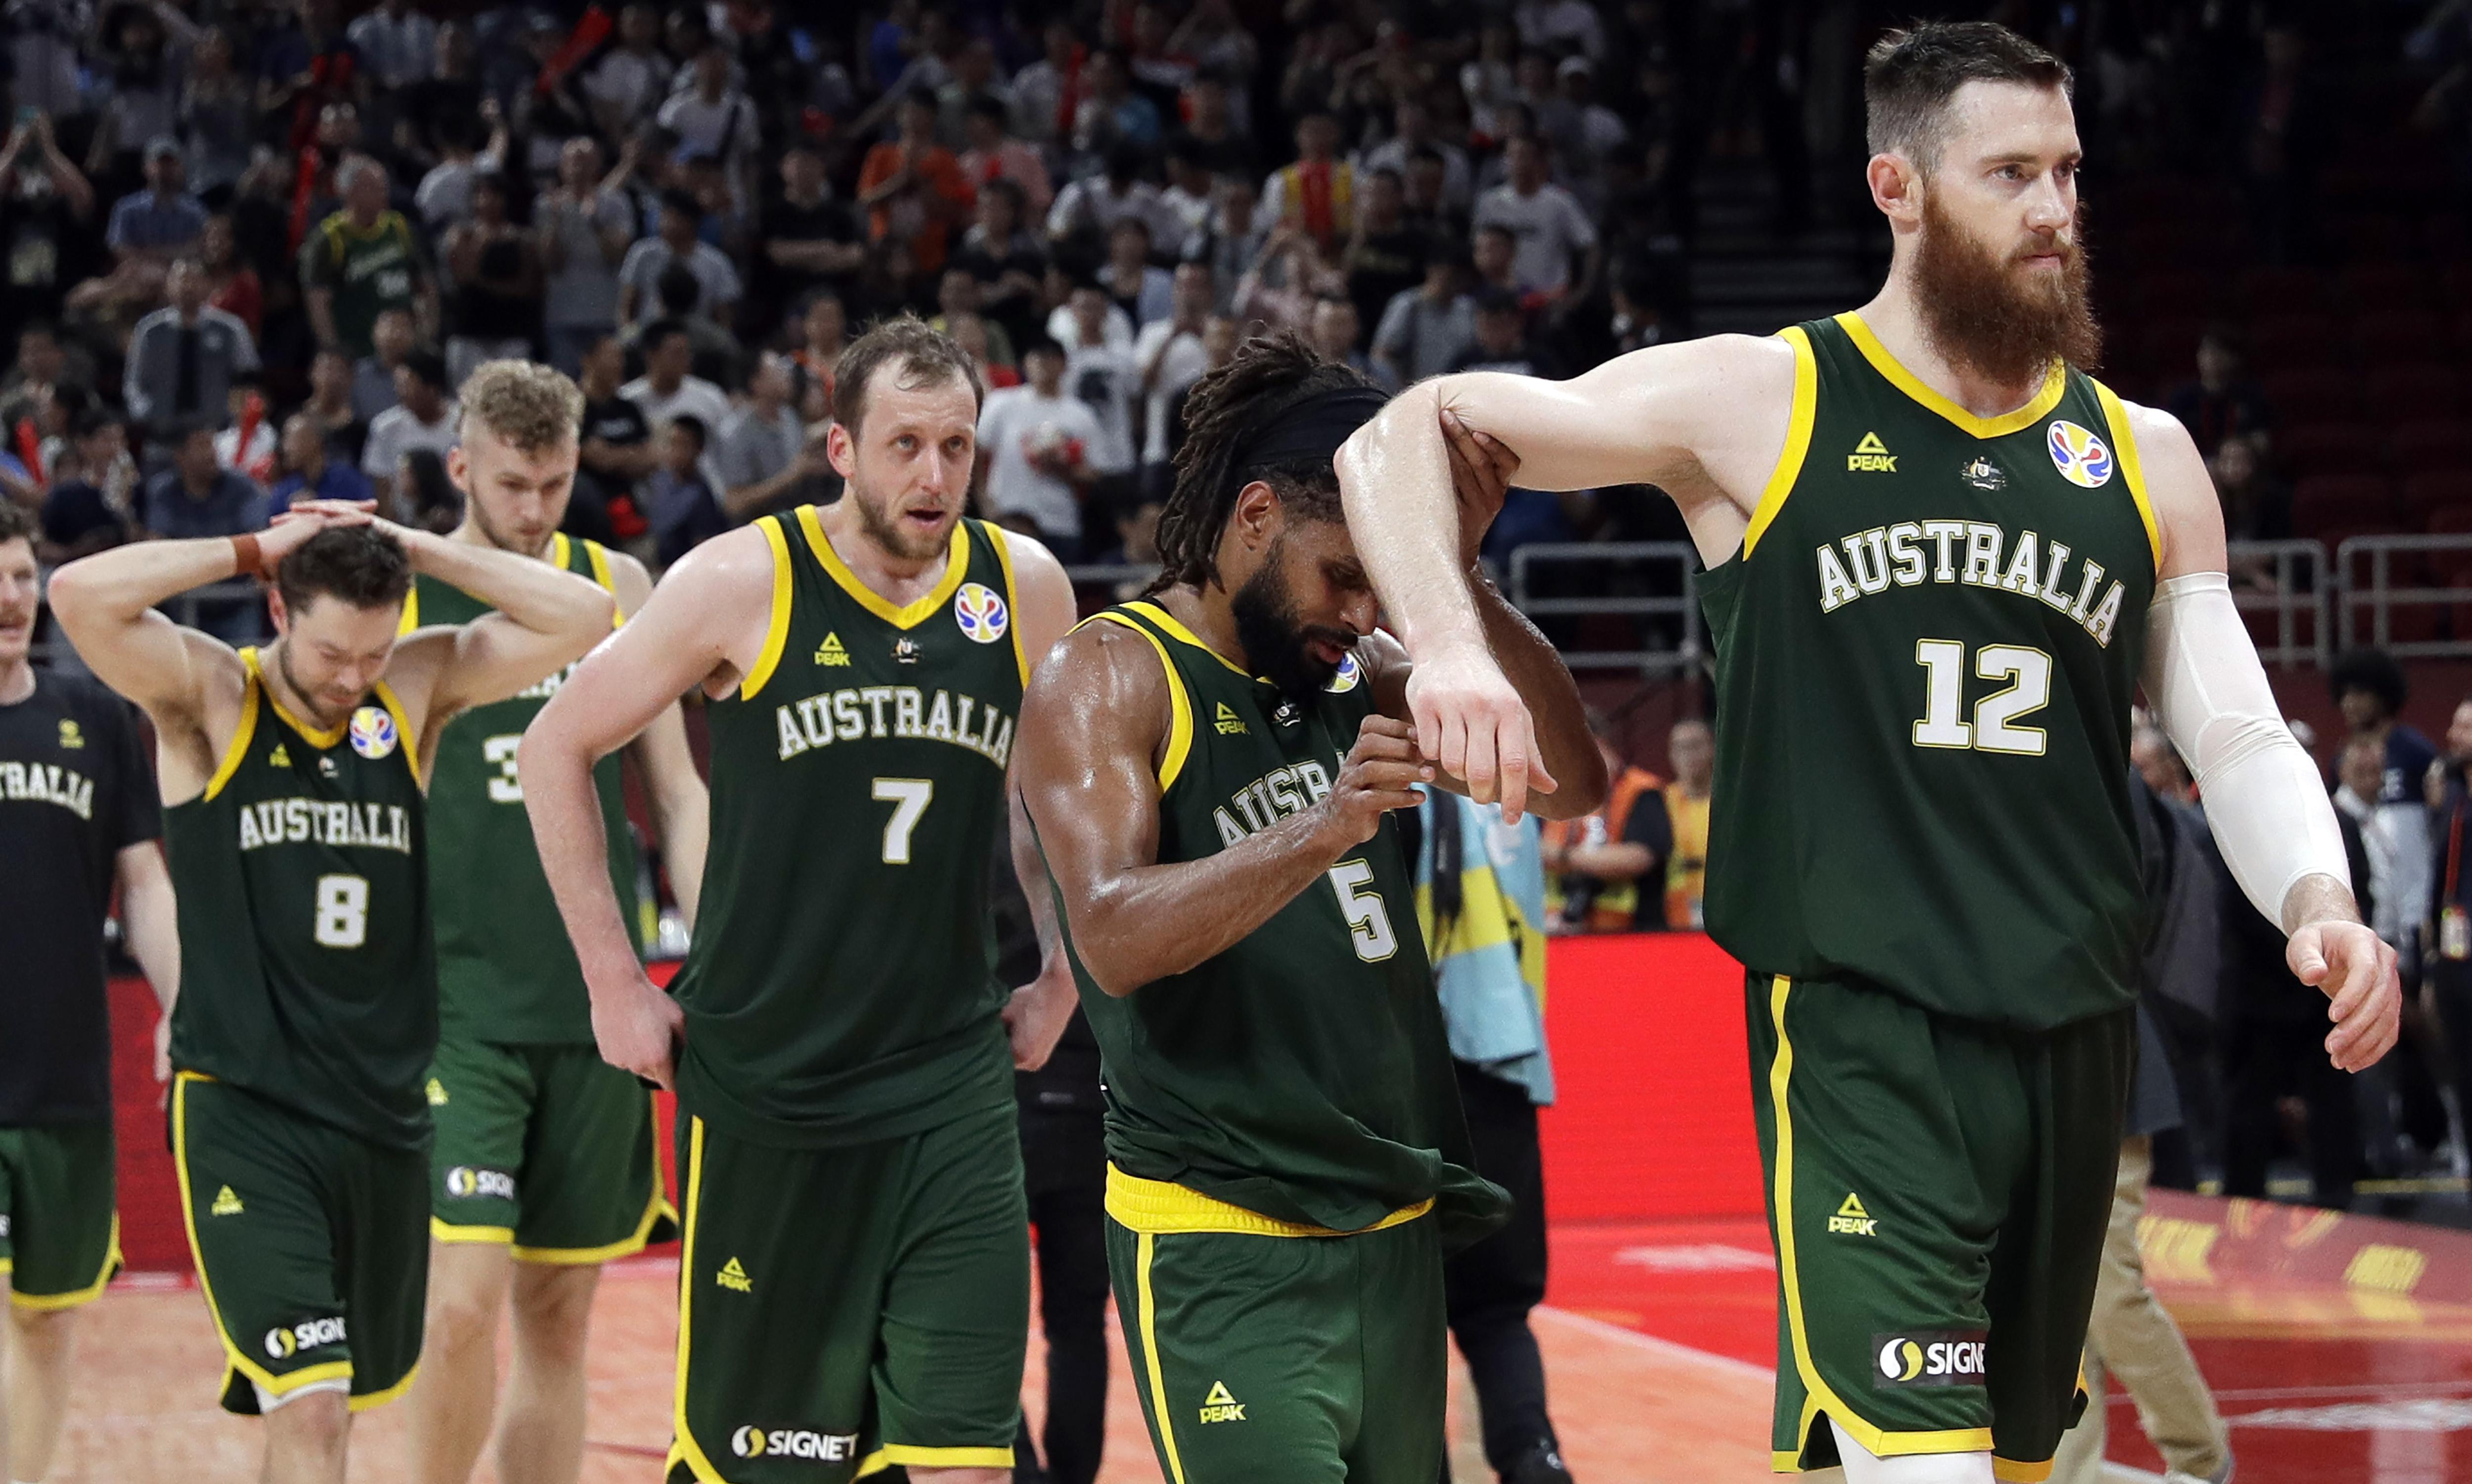 Angry Boomers fall short at Basketball World Cup but historic medal still within reach